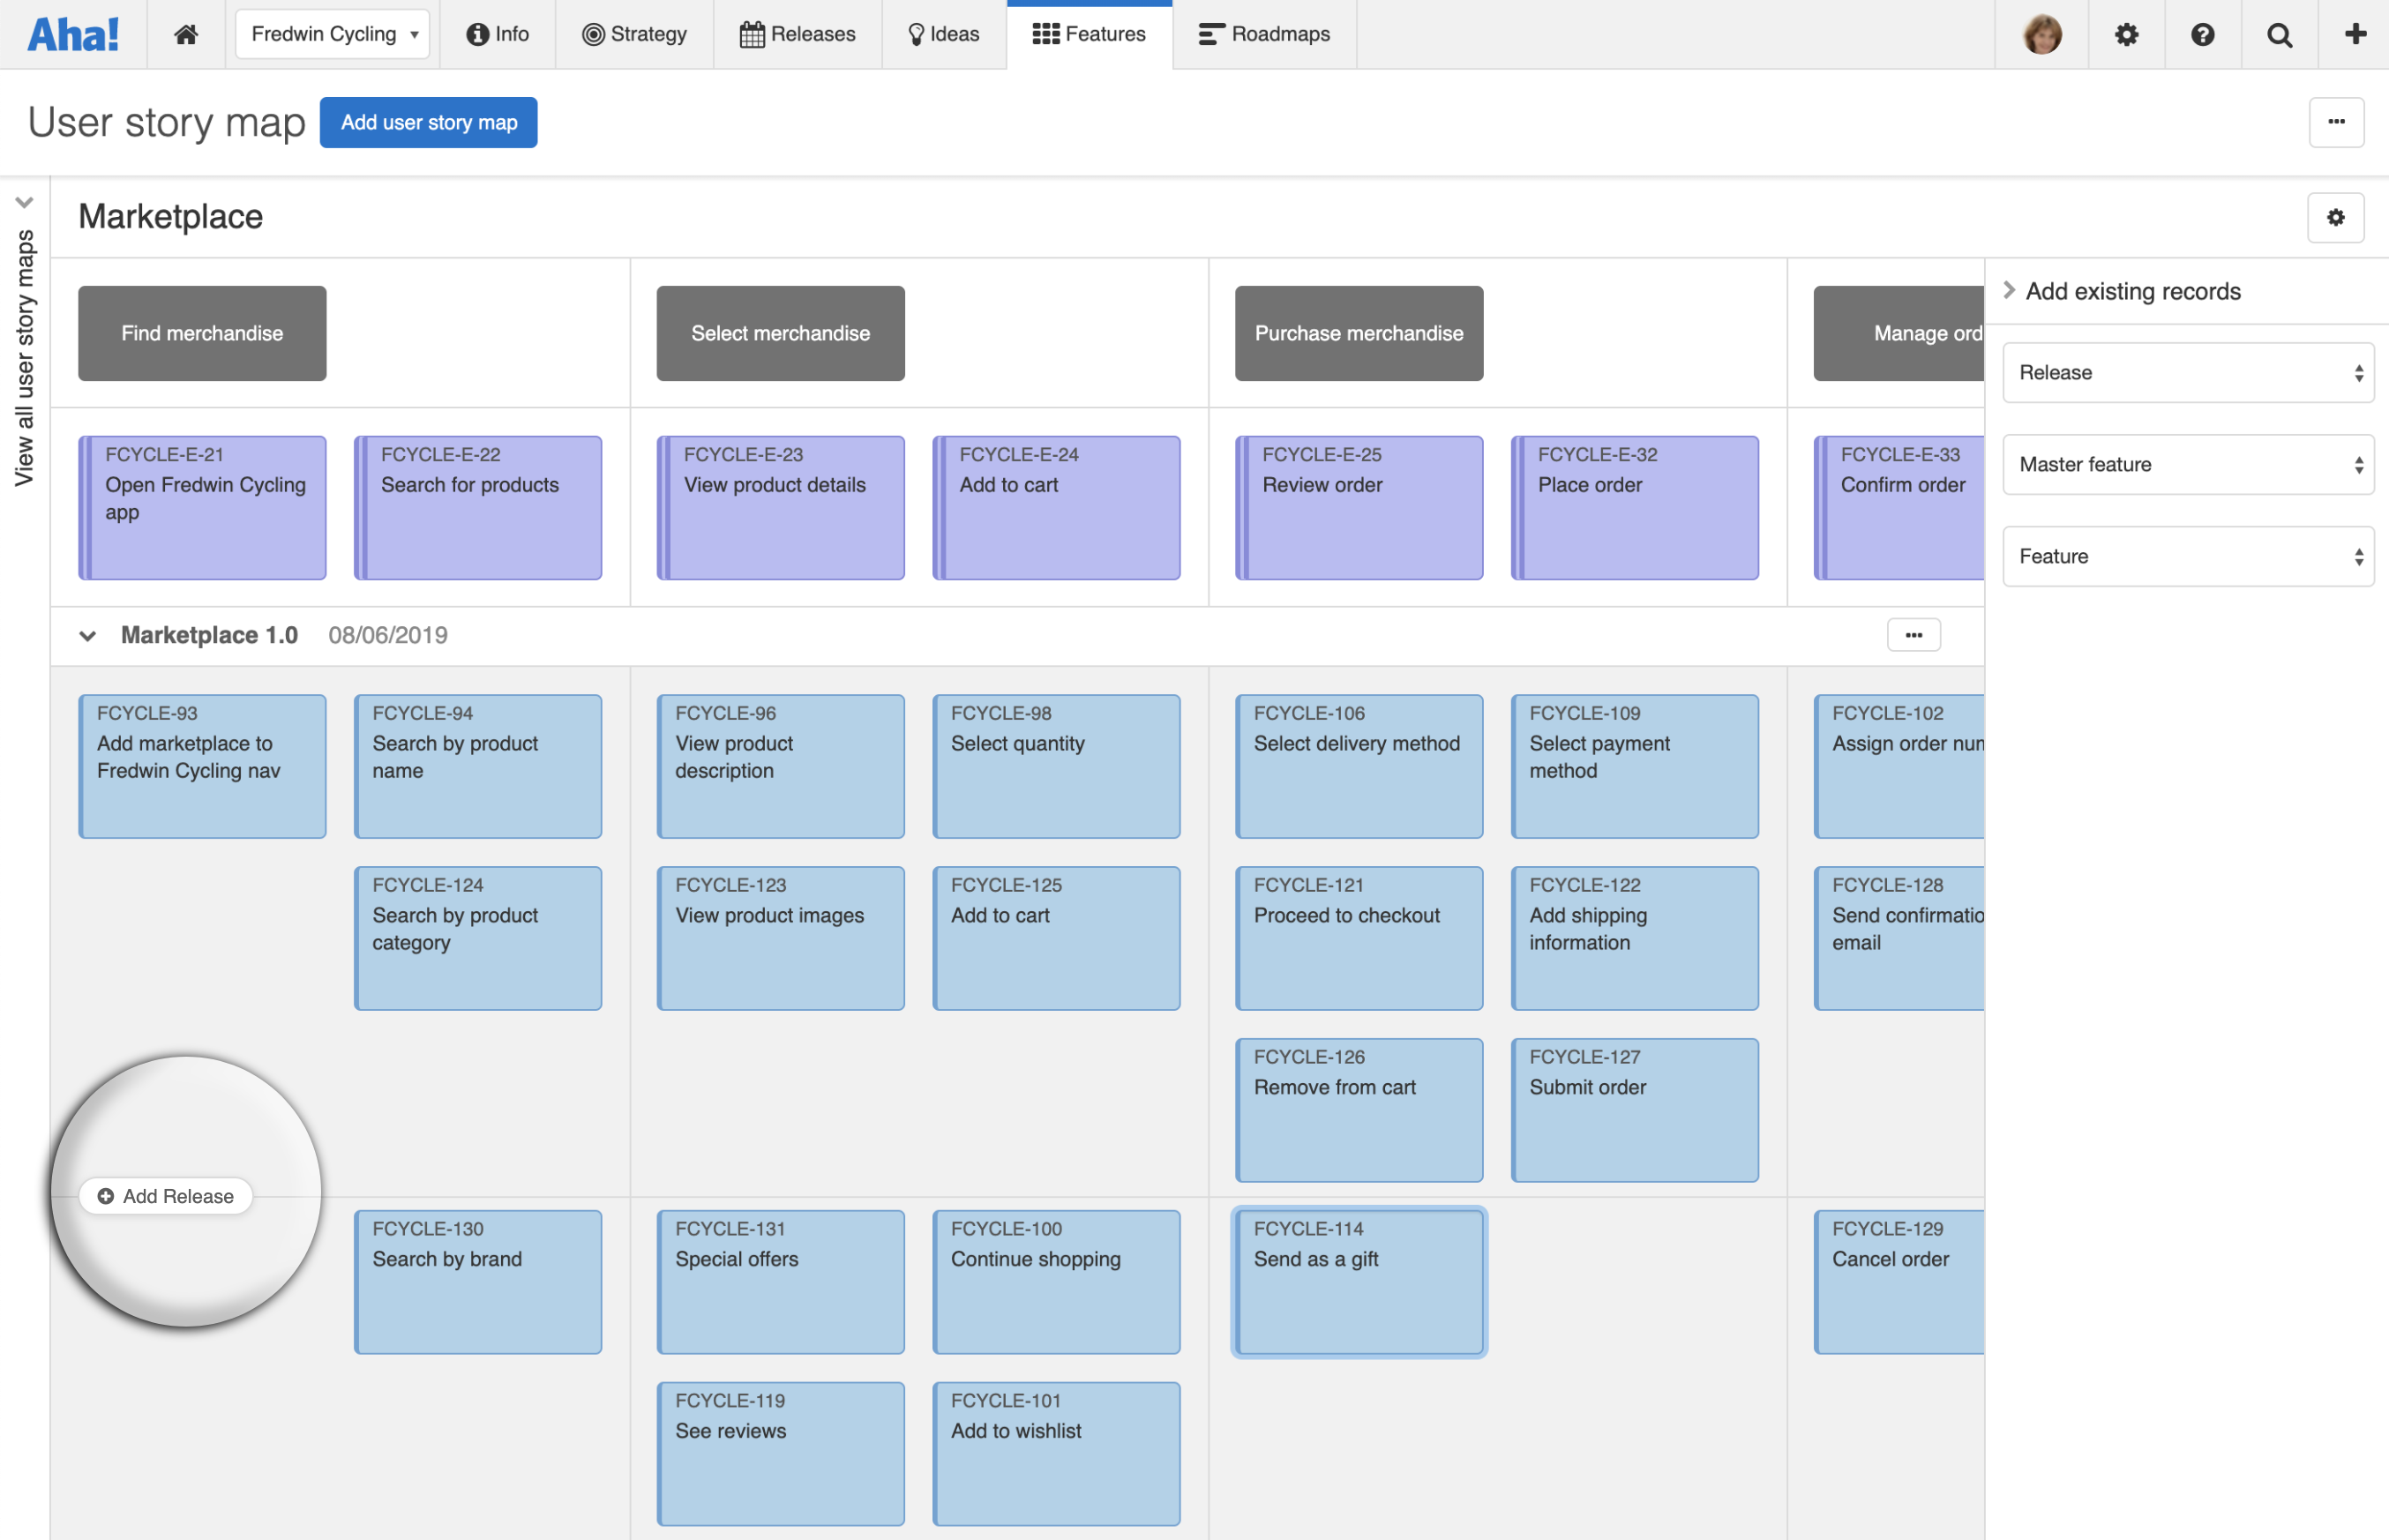 Add a release to a user story map in Aha!